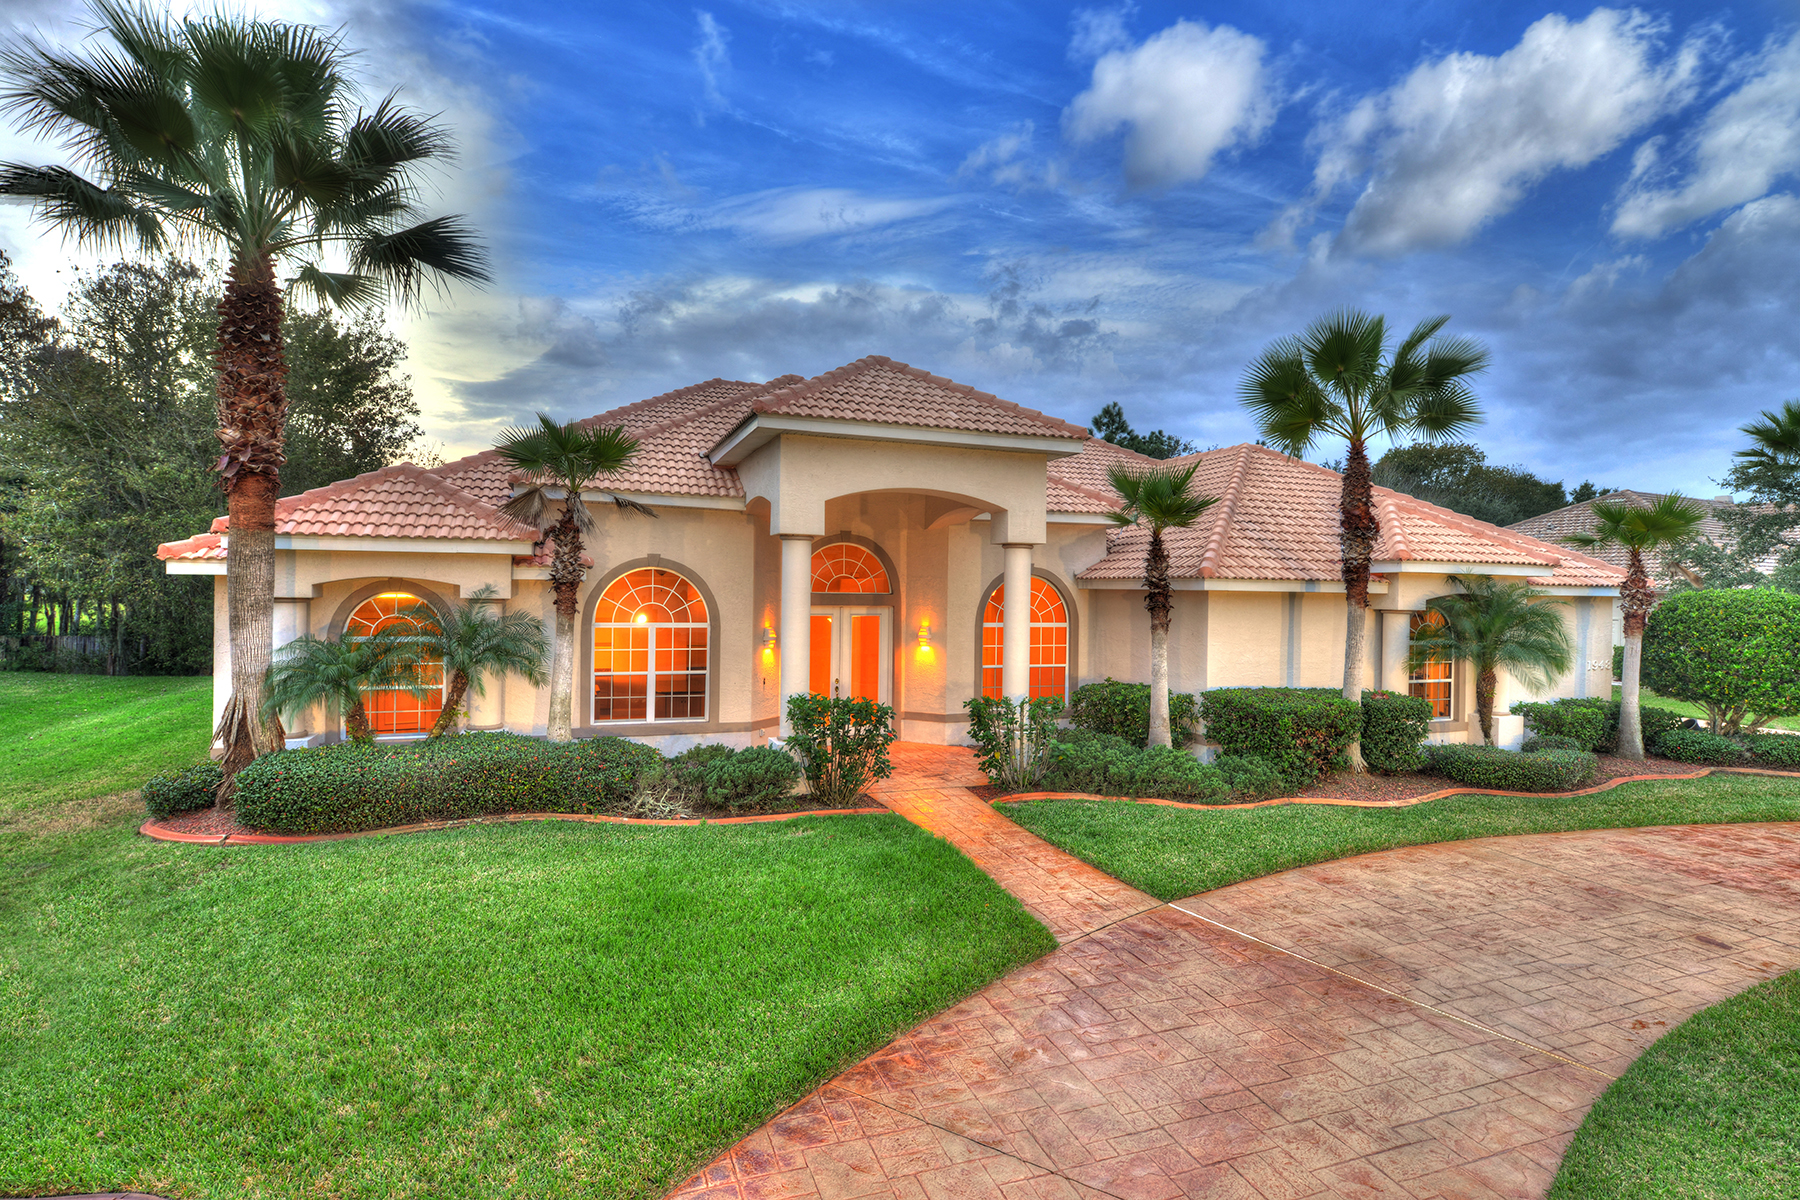 Villa per Vendita alle ore SPRUCE CREEK AND THE BEACHES 1948 Southcreek Blvd Port Orange, Florida, 32128 Stati Uniti